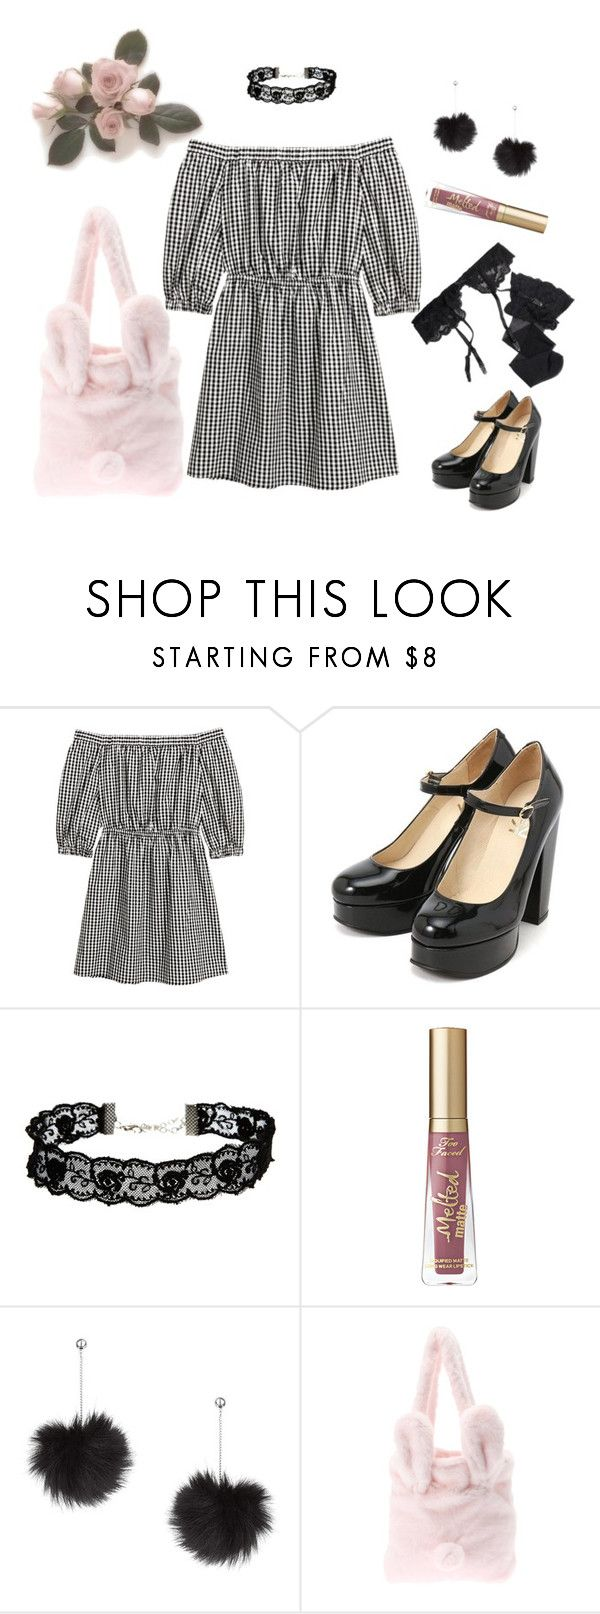 """""""Sweet gingham"""" by sweetpasteldream ❤ liked on Polyvore featuring ASOS, Topshop, Reger by Janet Reger, kawaii, gingham, jfashion, Larme and larmekei"""